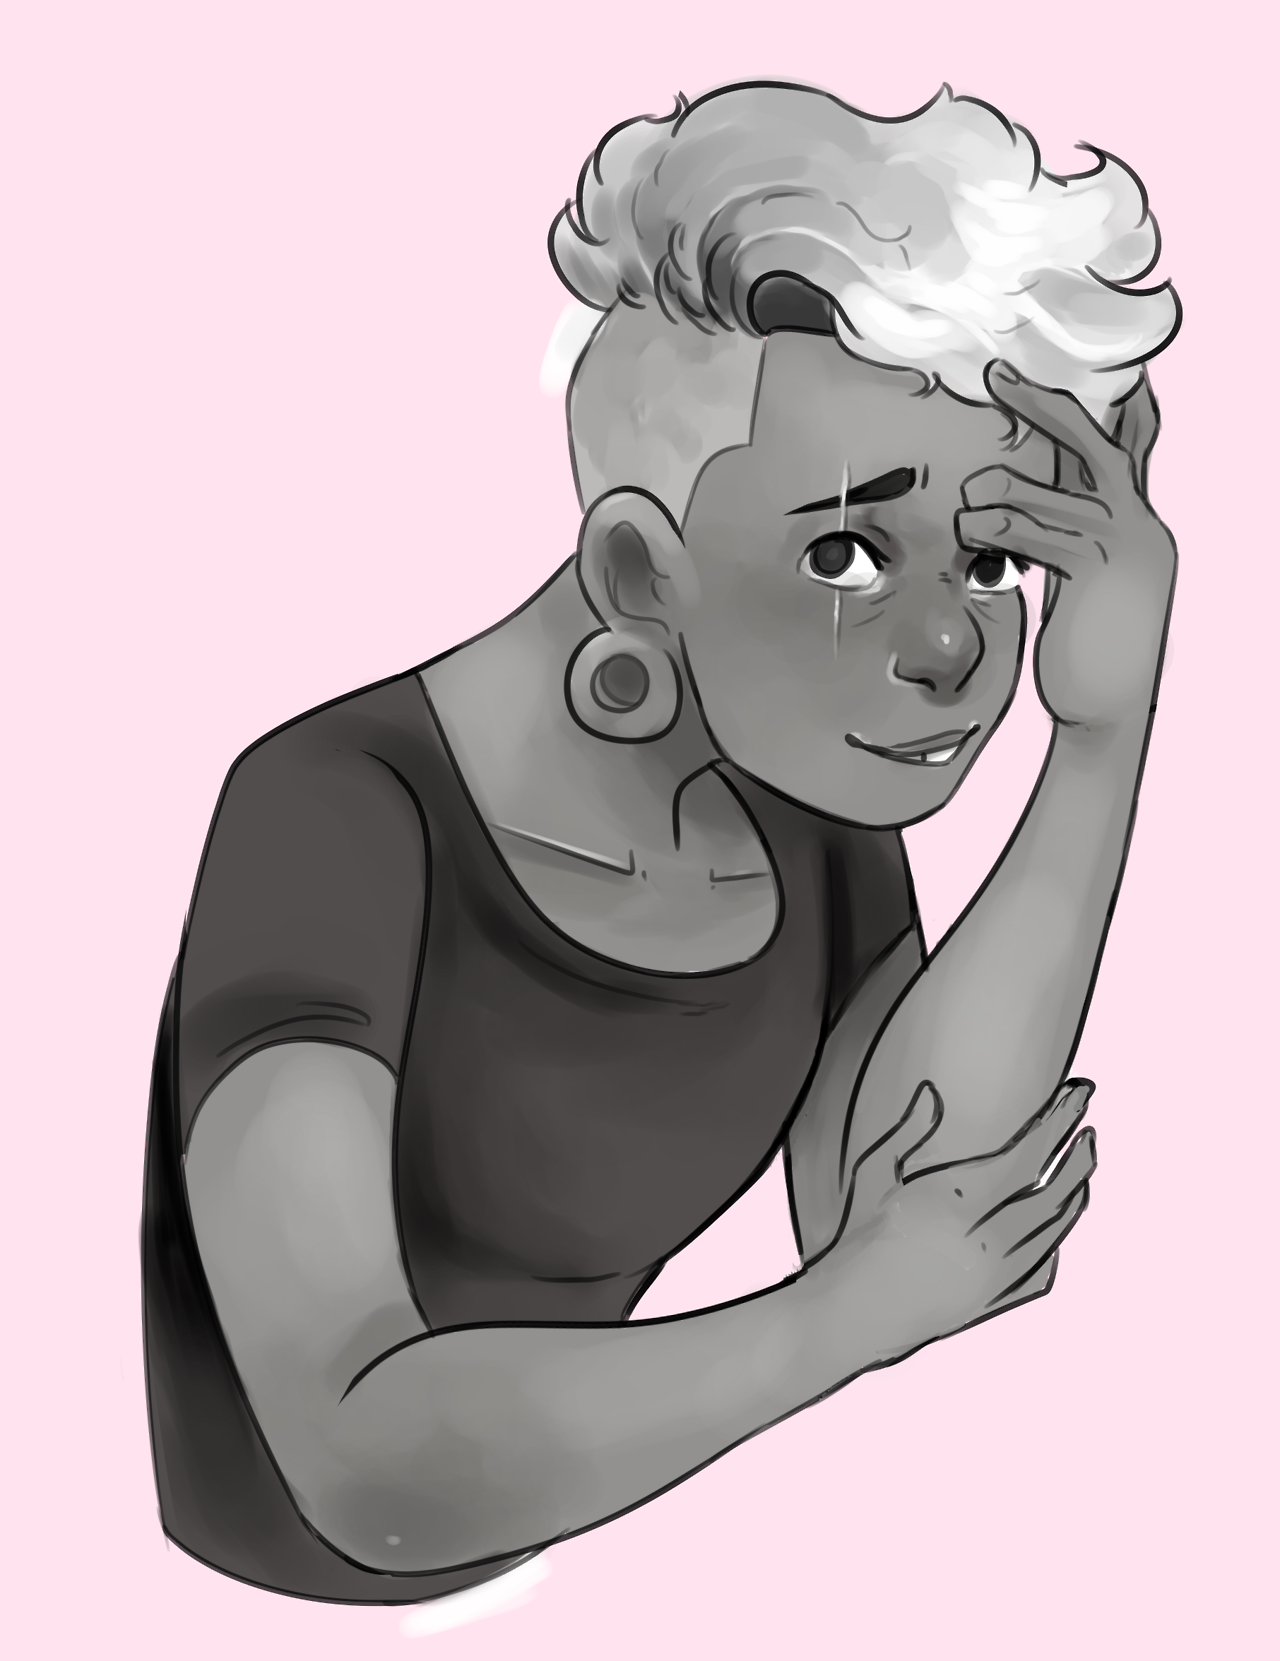 Wanted to experiment with tone before colour, after all that happened I had to choose Lars as the subject.